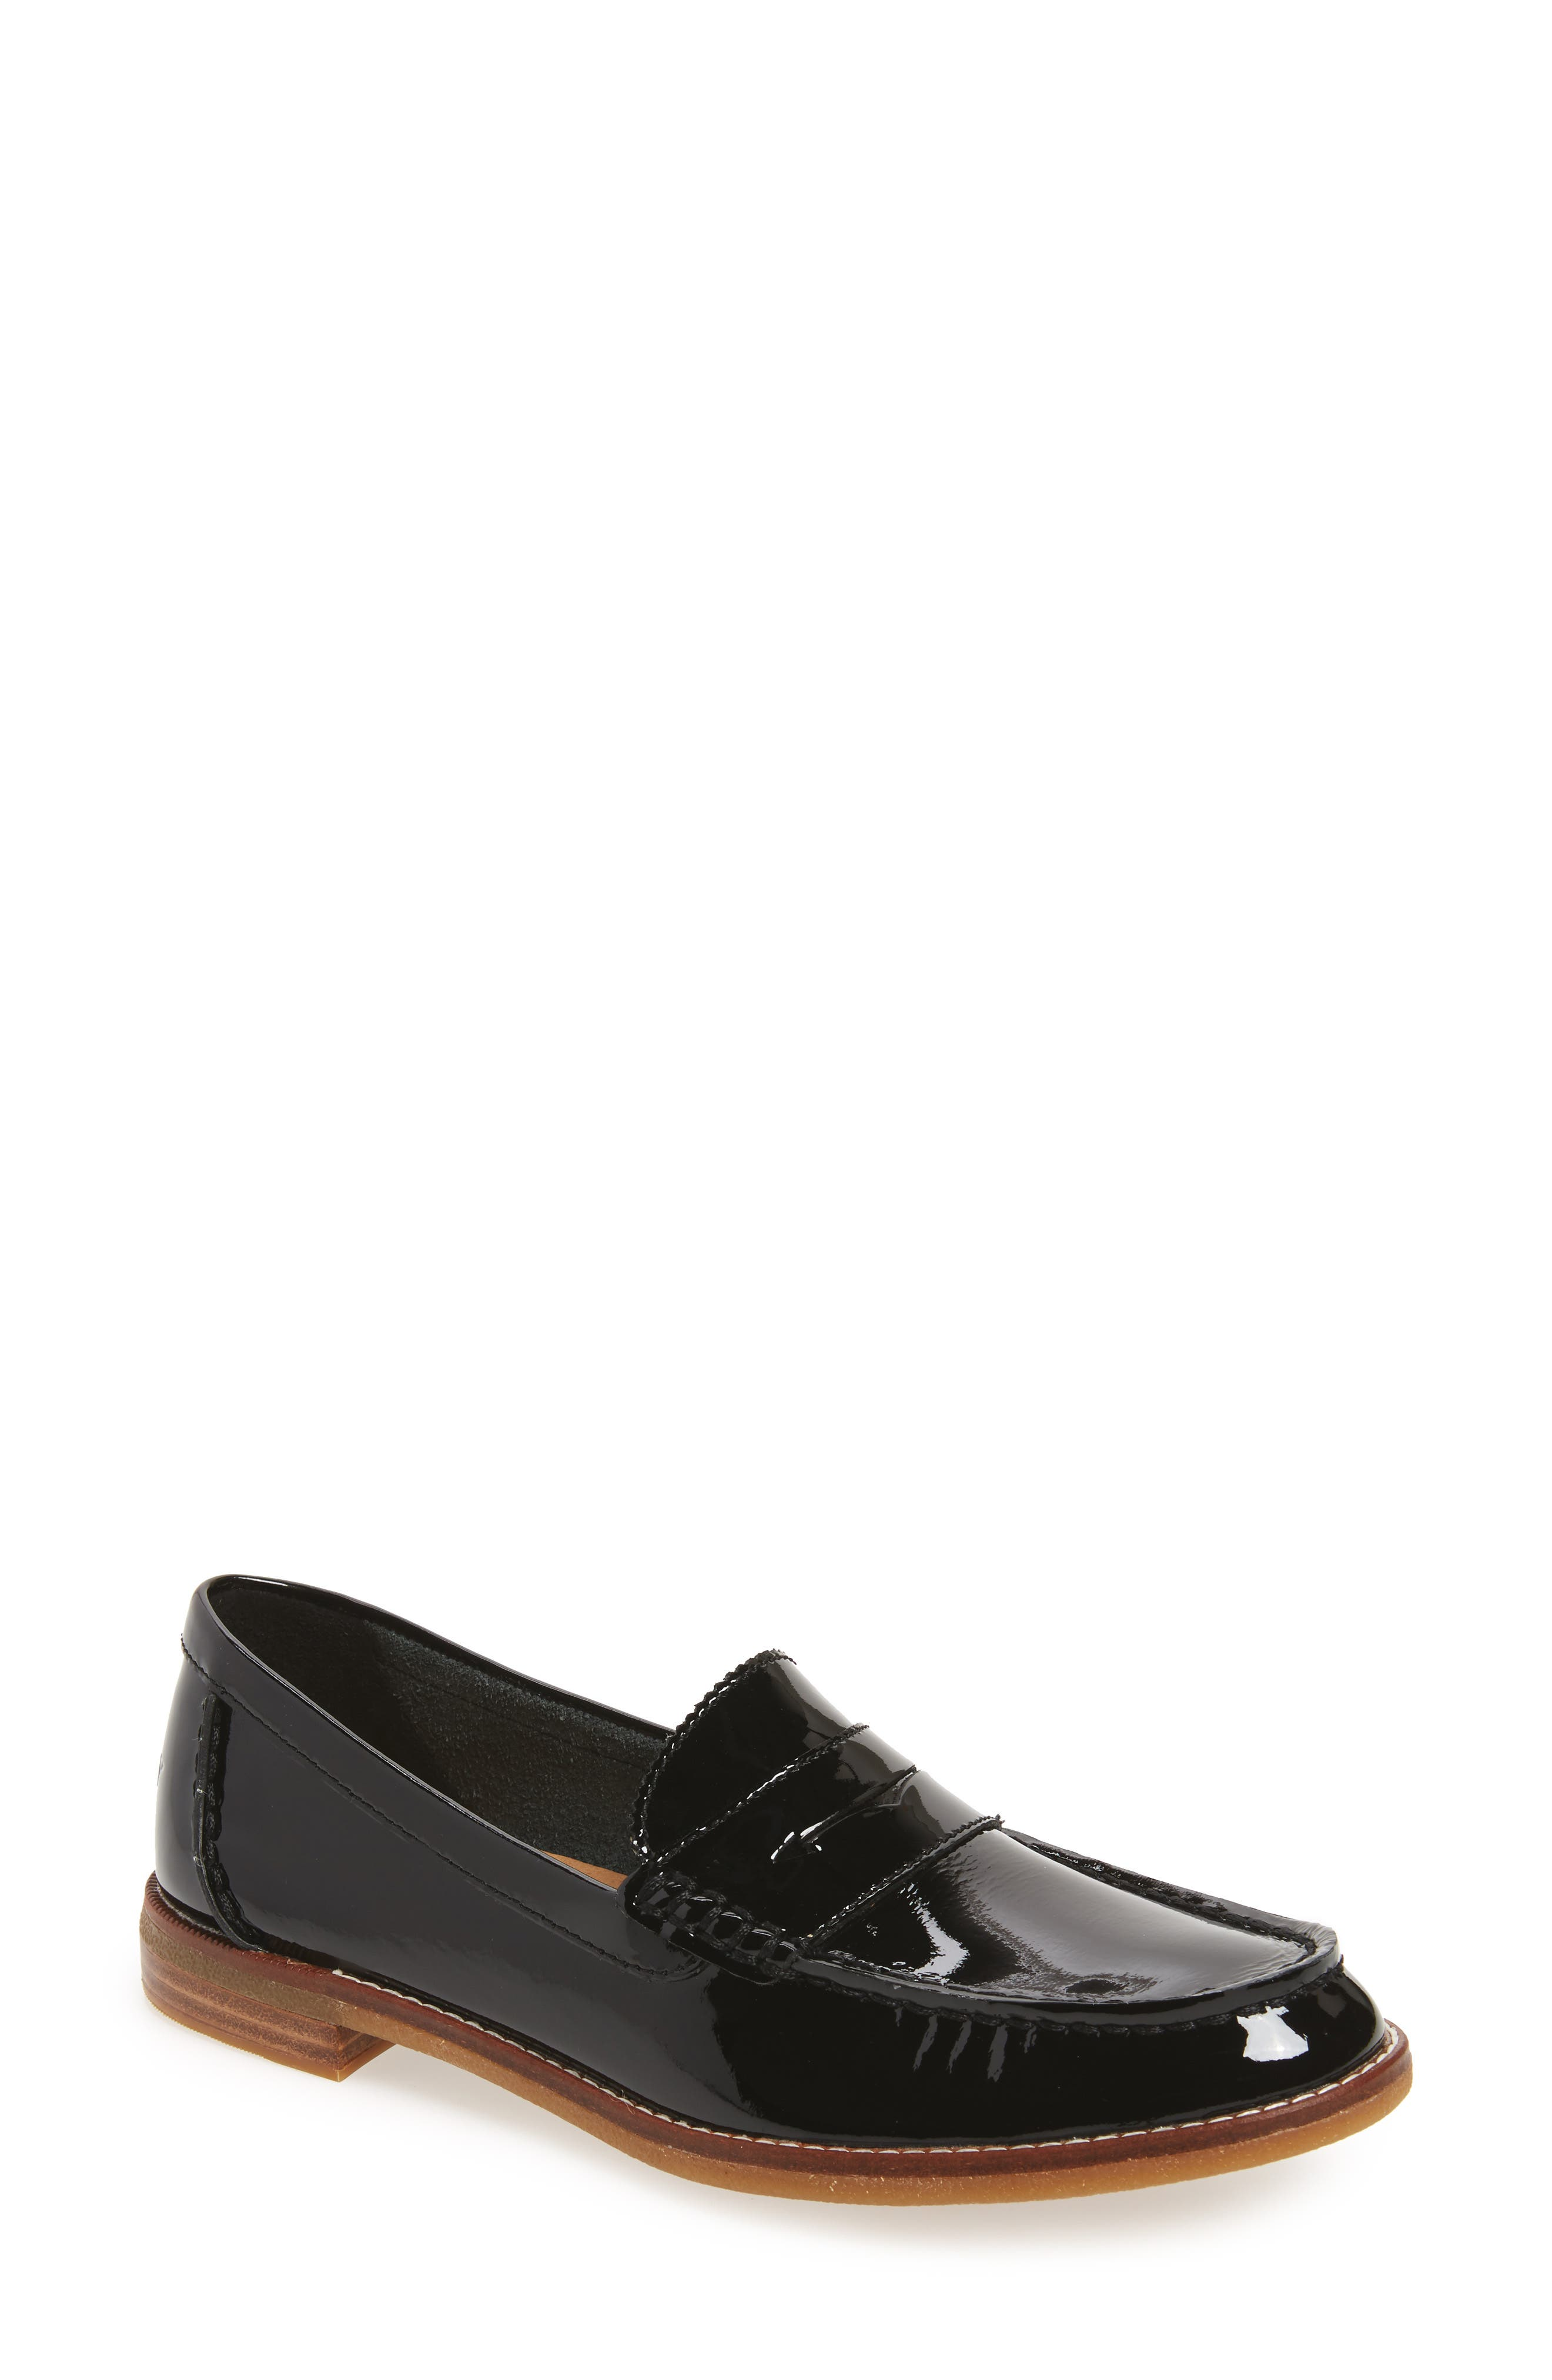 Seaport Penny Loafer,                         Main,                         color, BLACK PATENT LEATHER